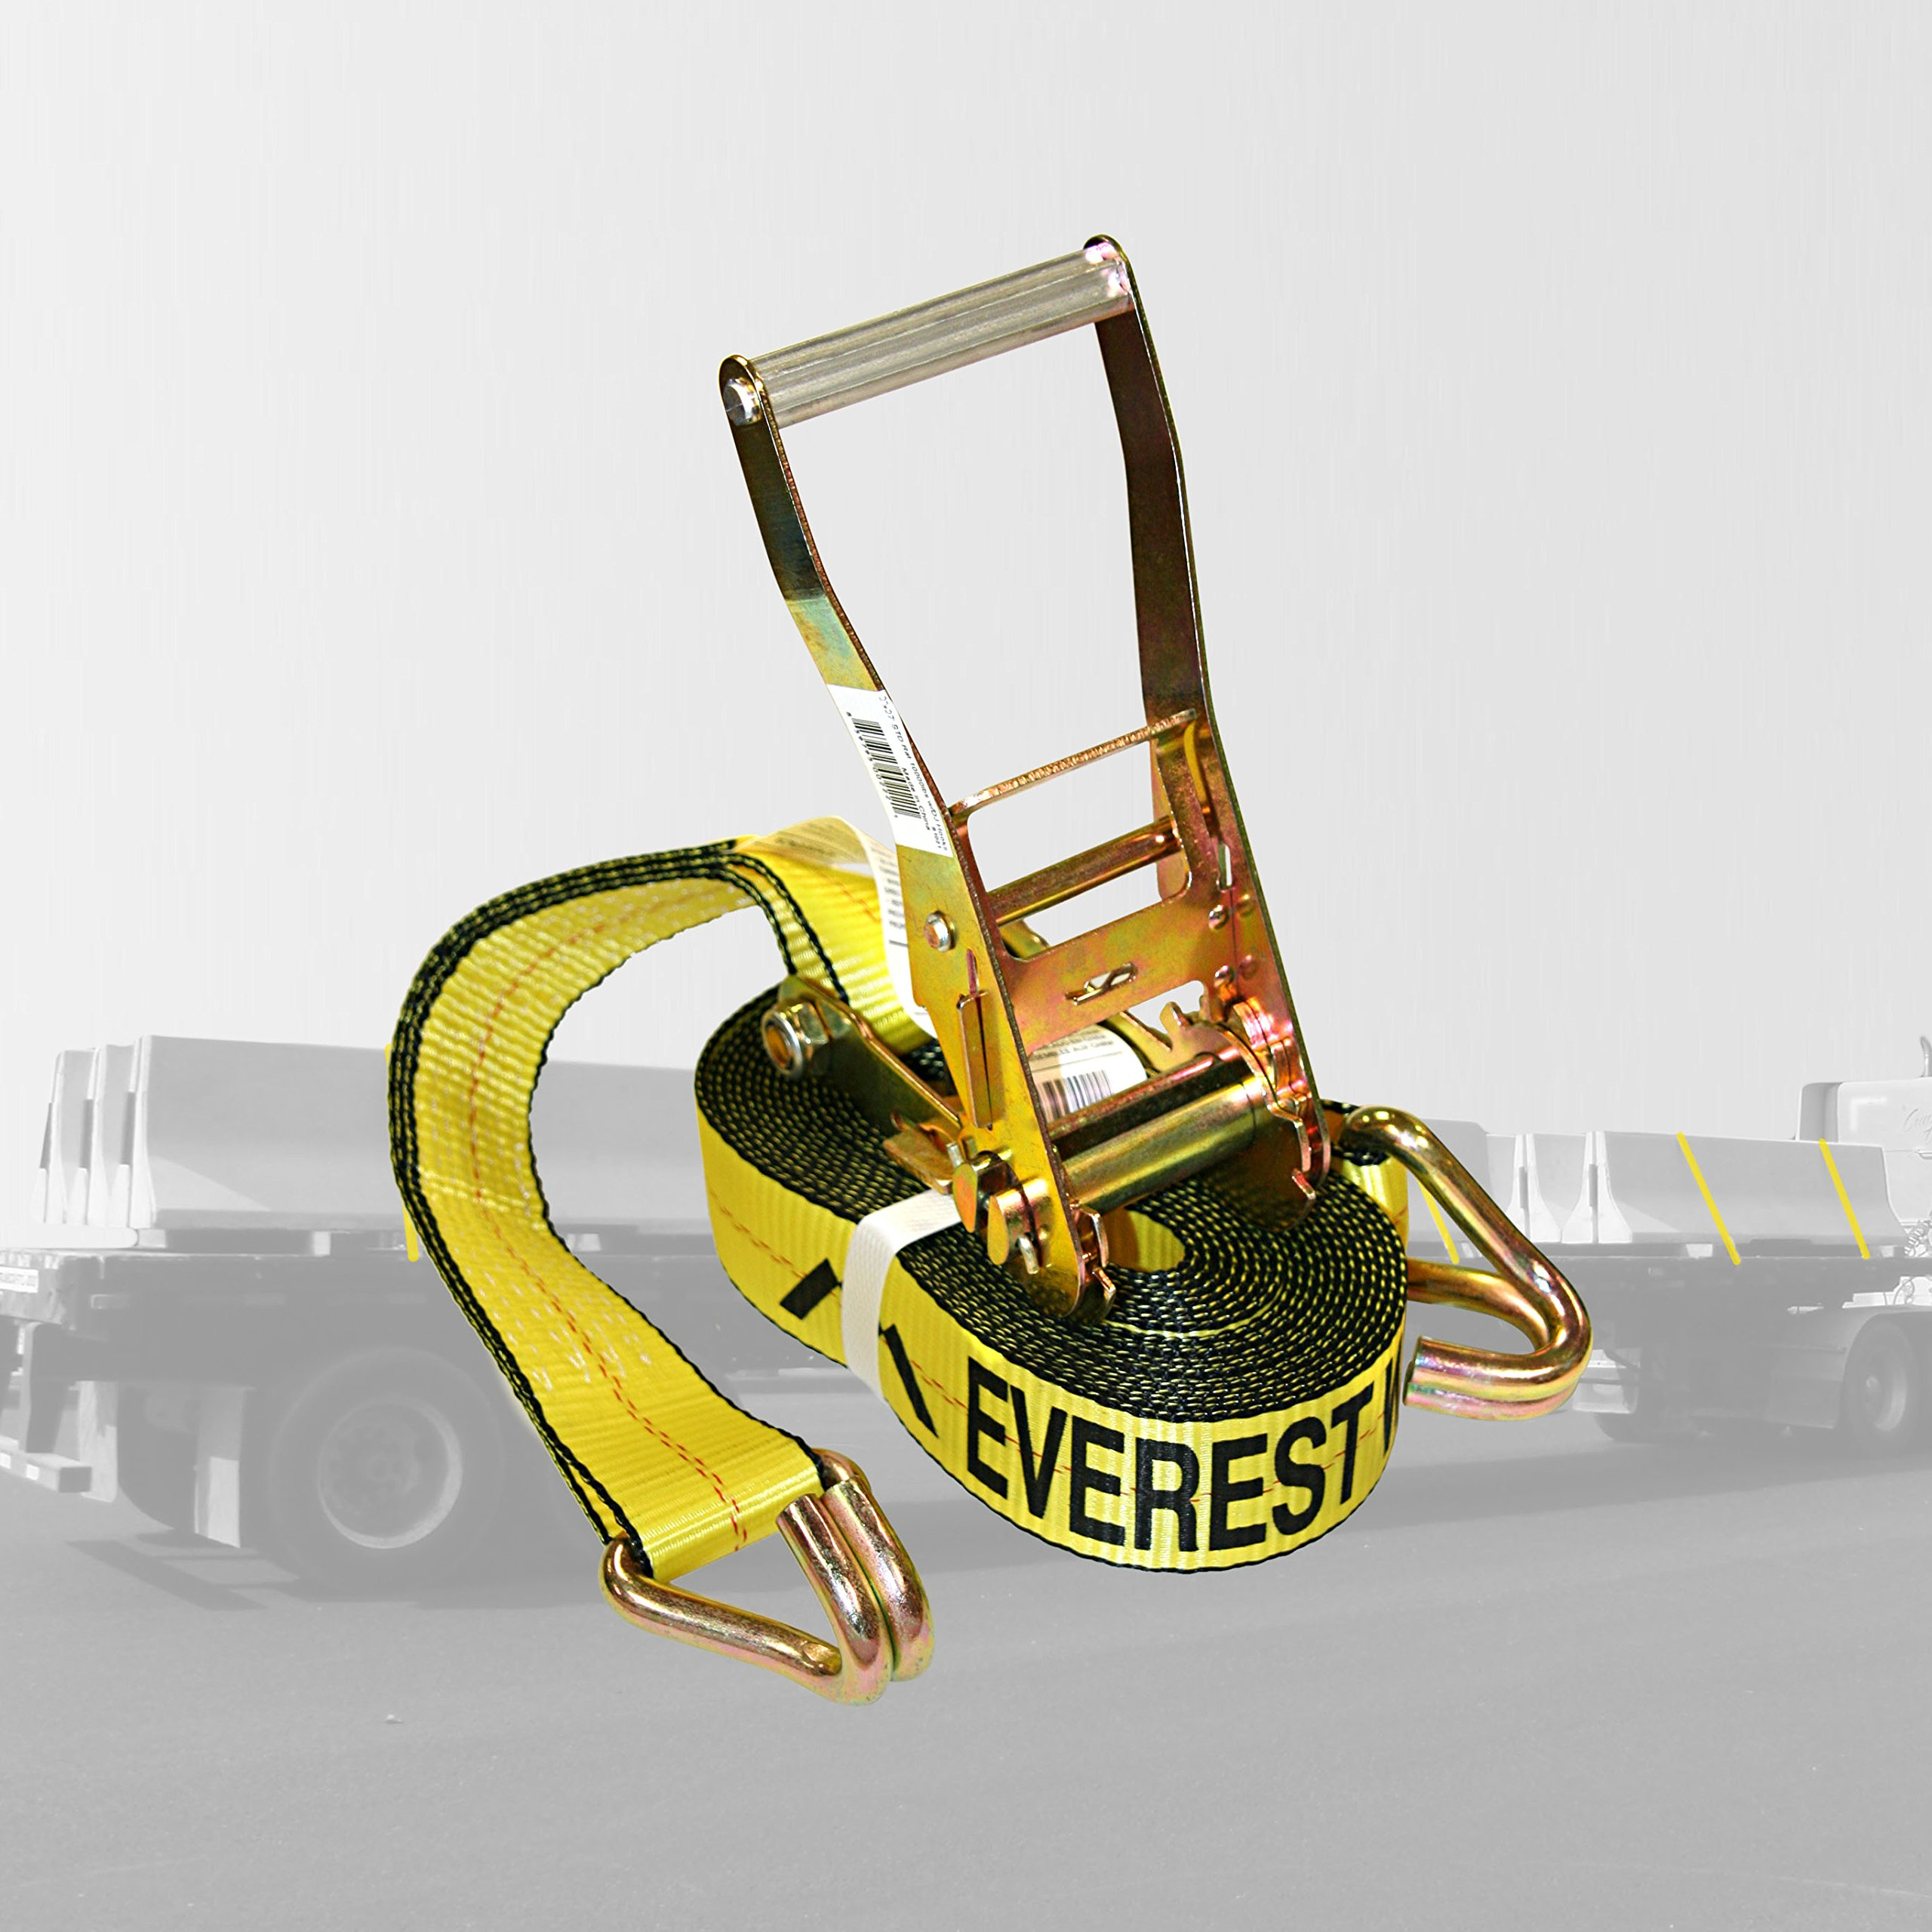 Everest Premium Ratchet Tie Down - 1 PK - 2 IN - 27 FT - 3333 LBS Working Load - 10000 LBS Break Strength - Double J Hook - Cargo Straps Perfect for Moving Appliances, Lawn Equipment and Motorcycles by Everest